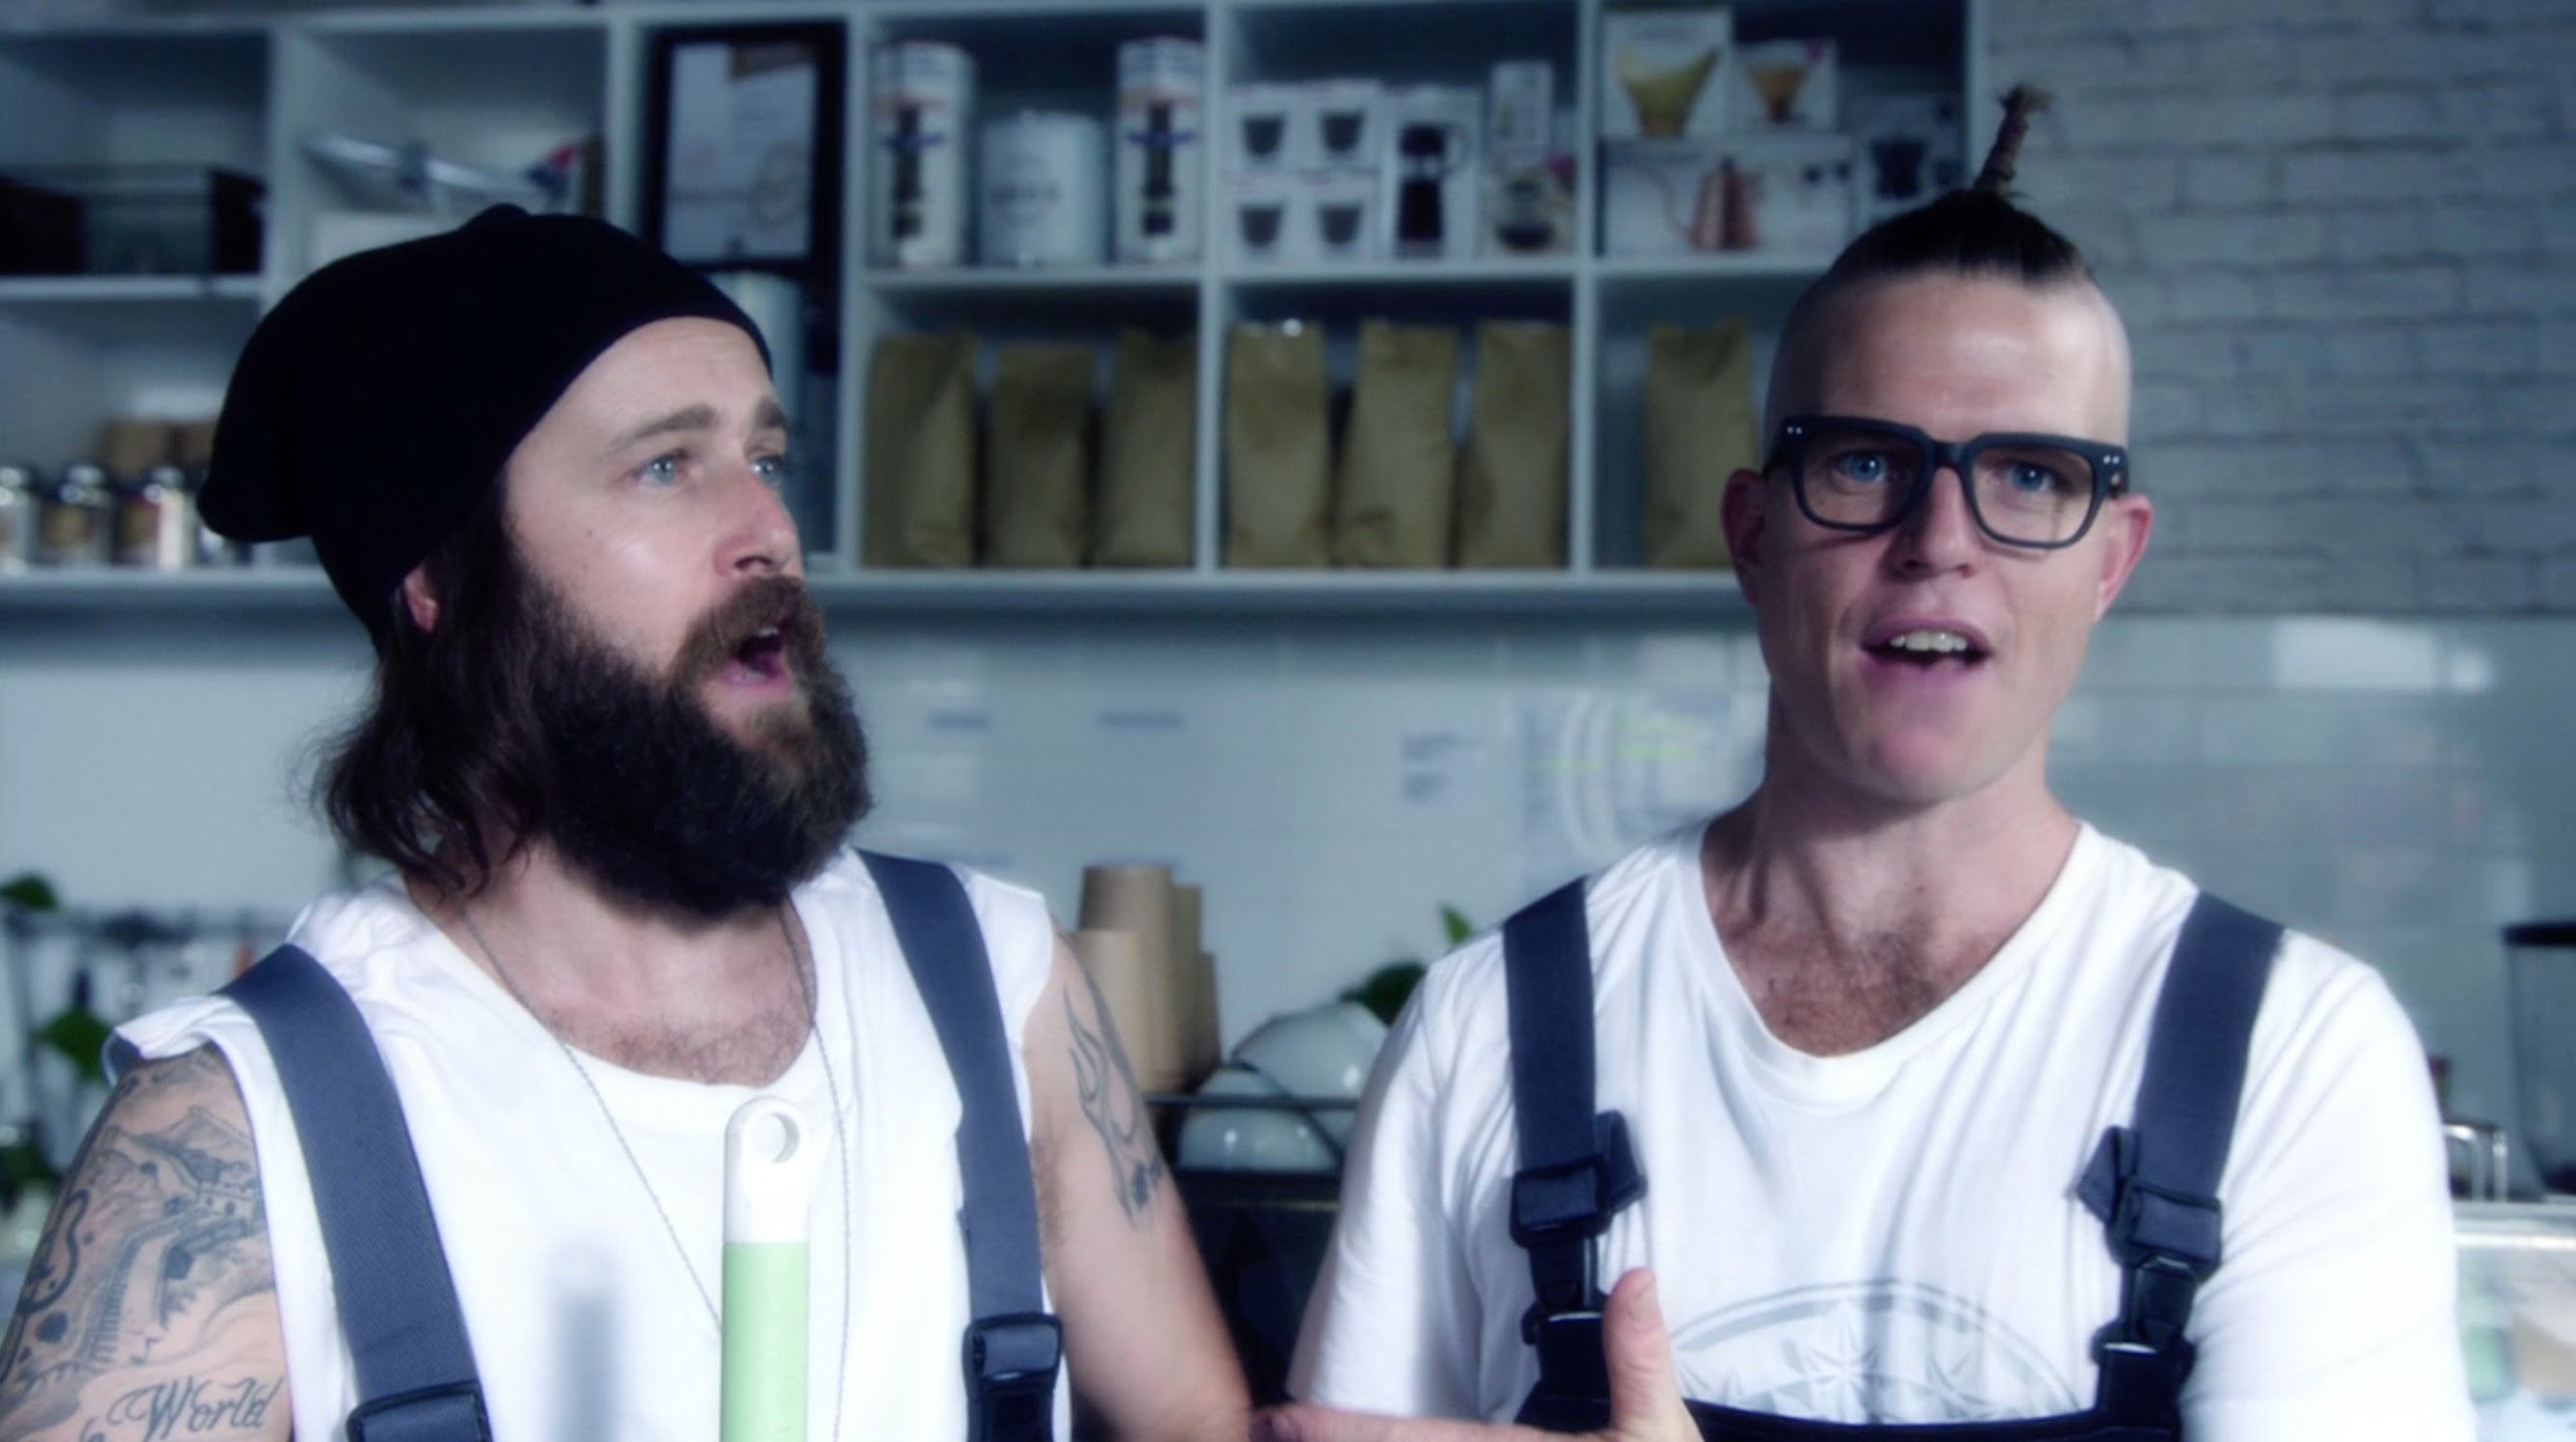 Hipster Cafe Level 9000, A Music Video About the Most Hipster Cafe